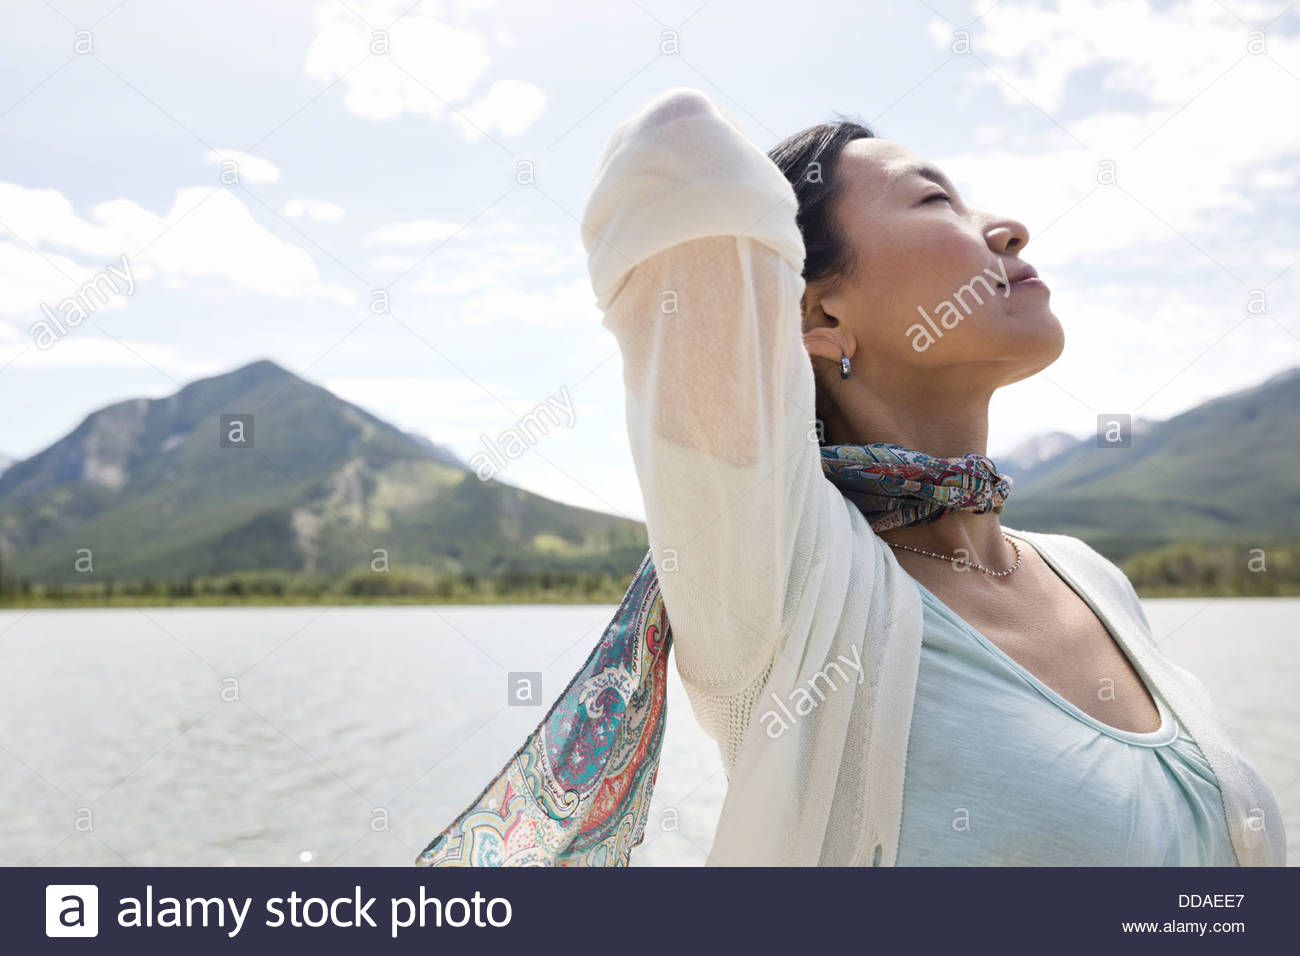 Mature woman enjoying the great outdoors - Stock Image